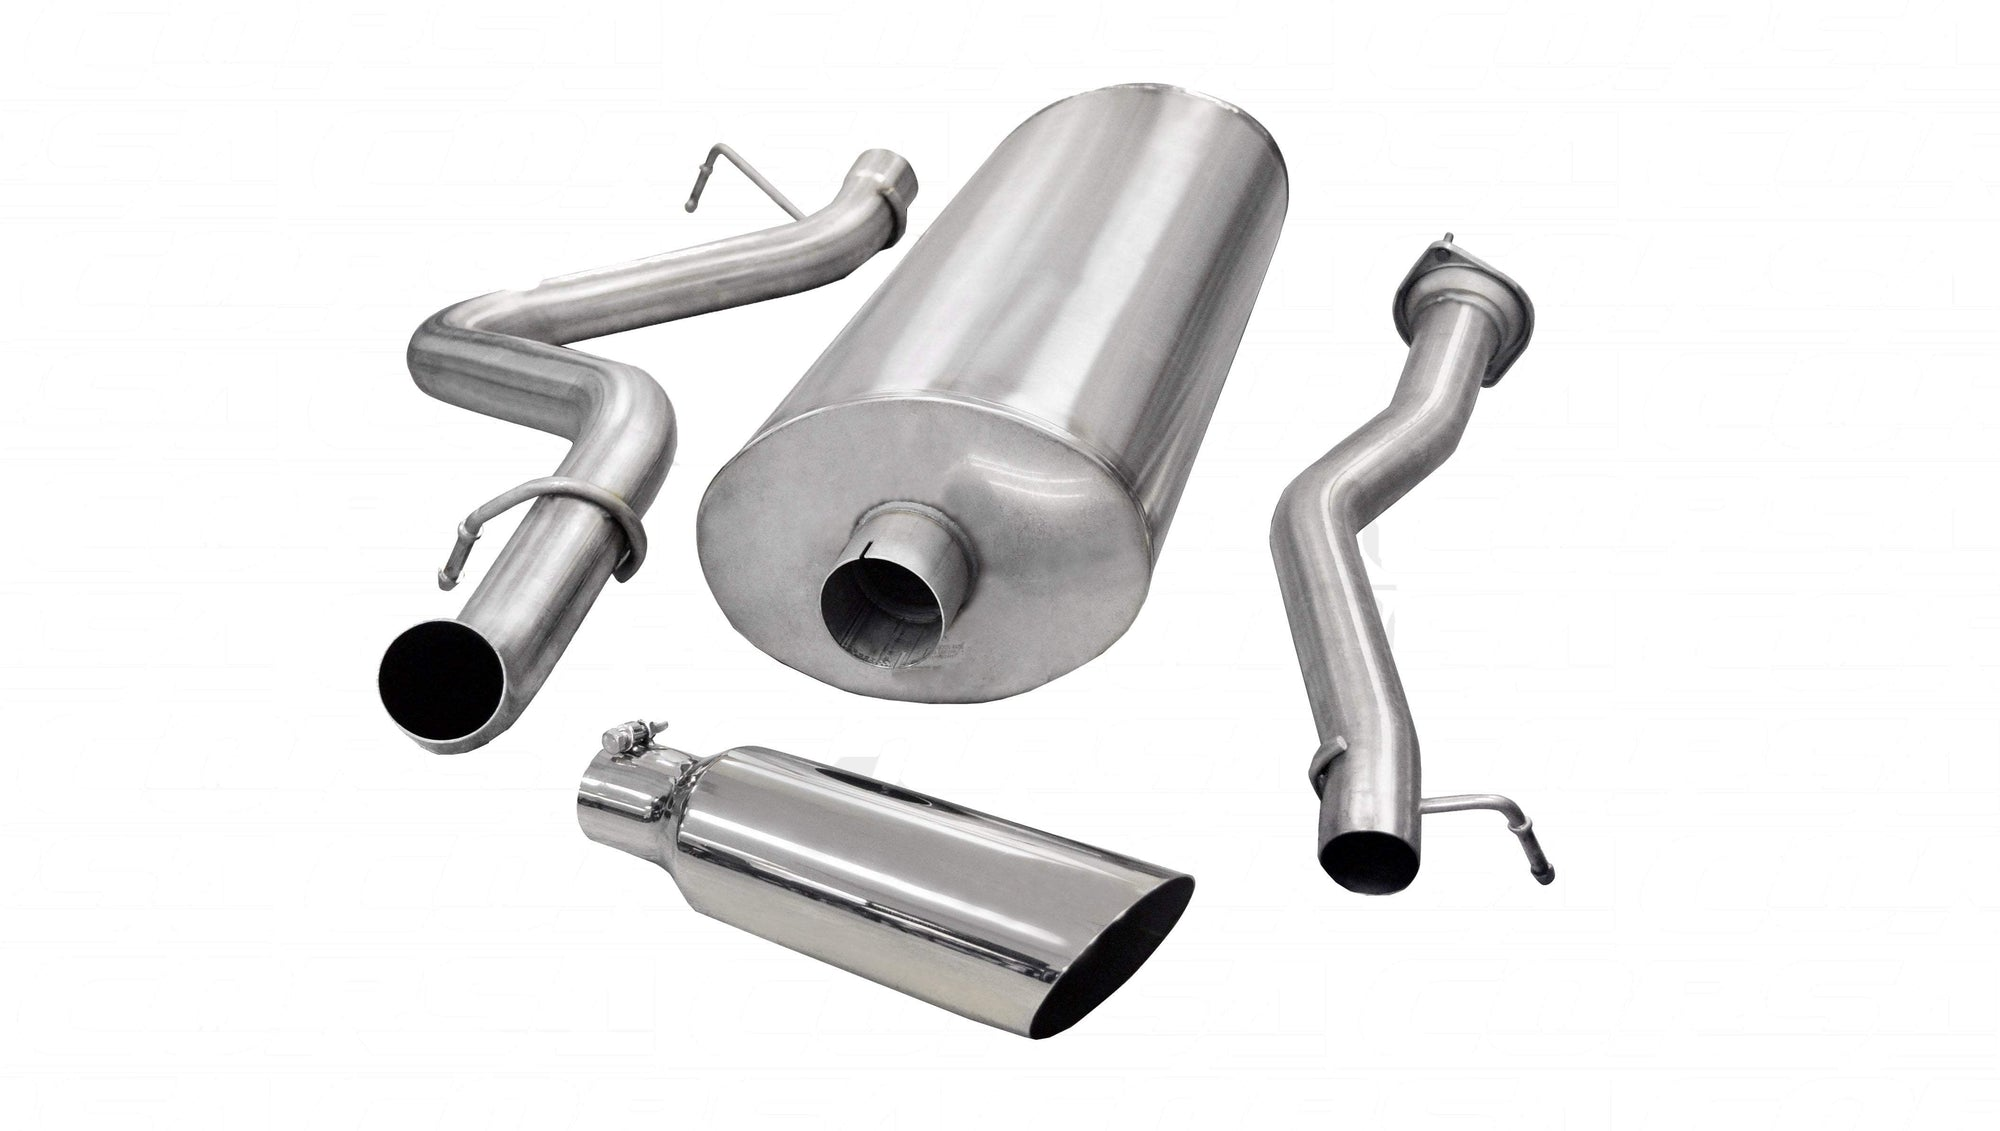 "dB Cat-Back Exhaust Polished / Sport / Single Side - Single 4in 3.0"" Cat-Back Exhaust System with 4.0"" Tip (24892) Sport Sound Level"